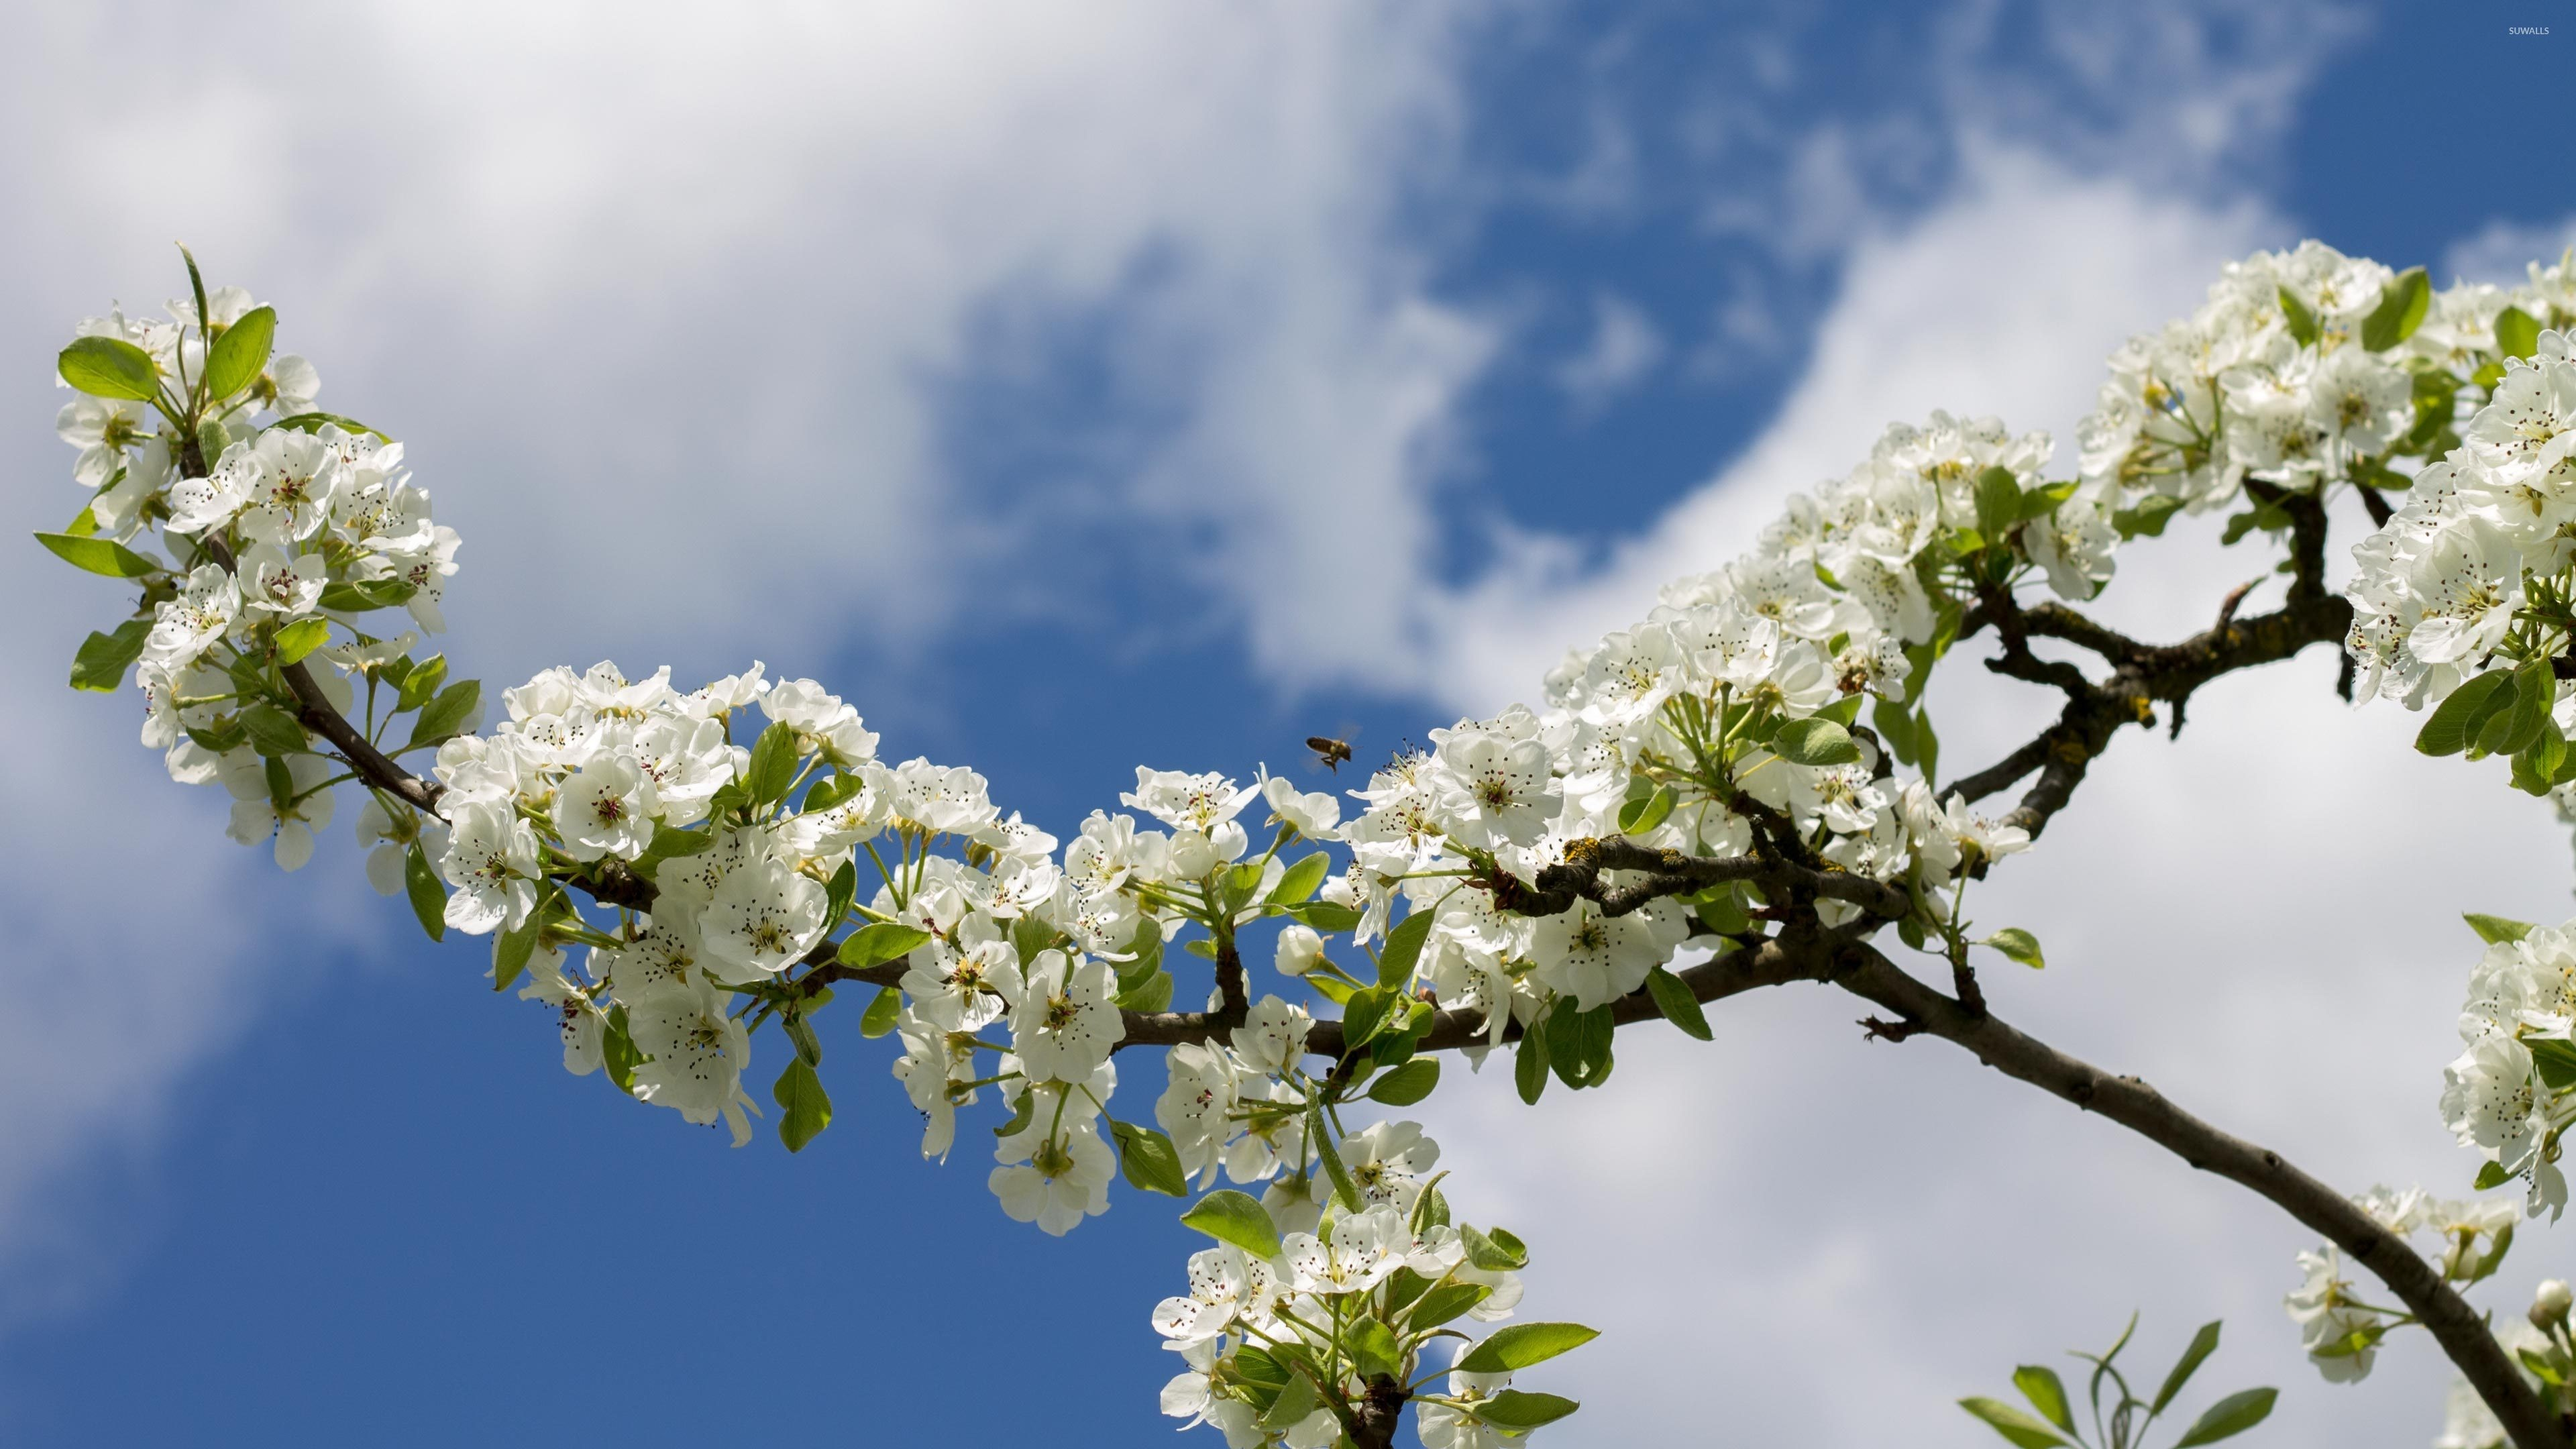 3840x2160 White pear blossoms along the branch wallpaper